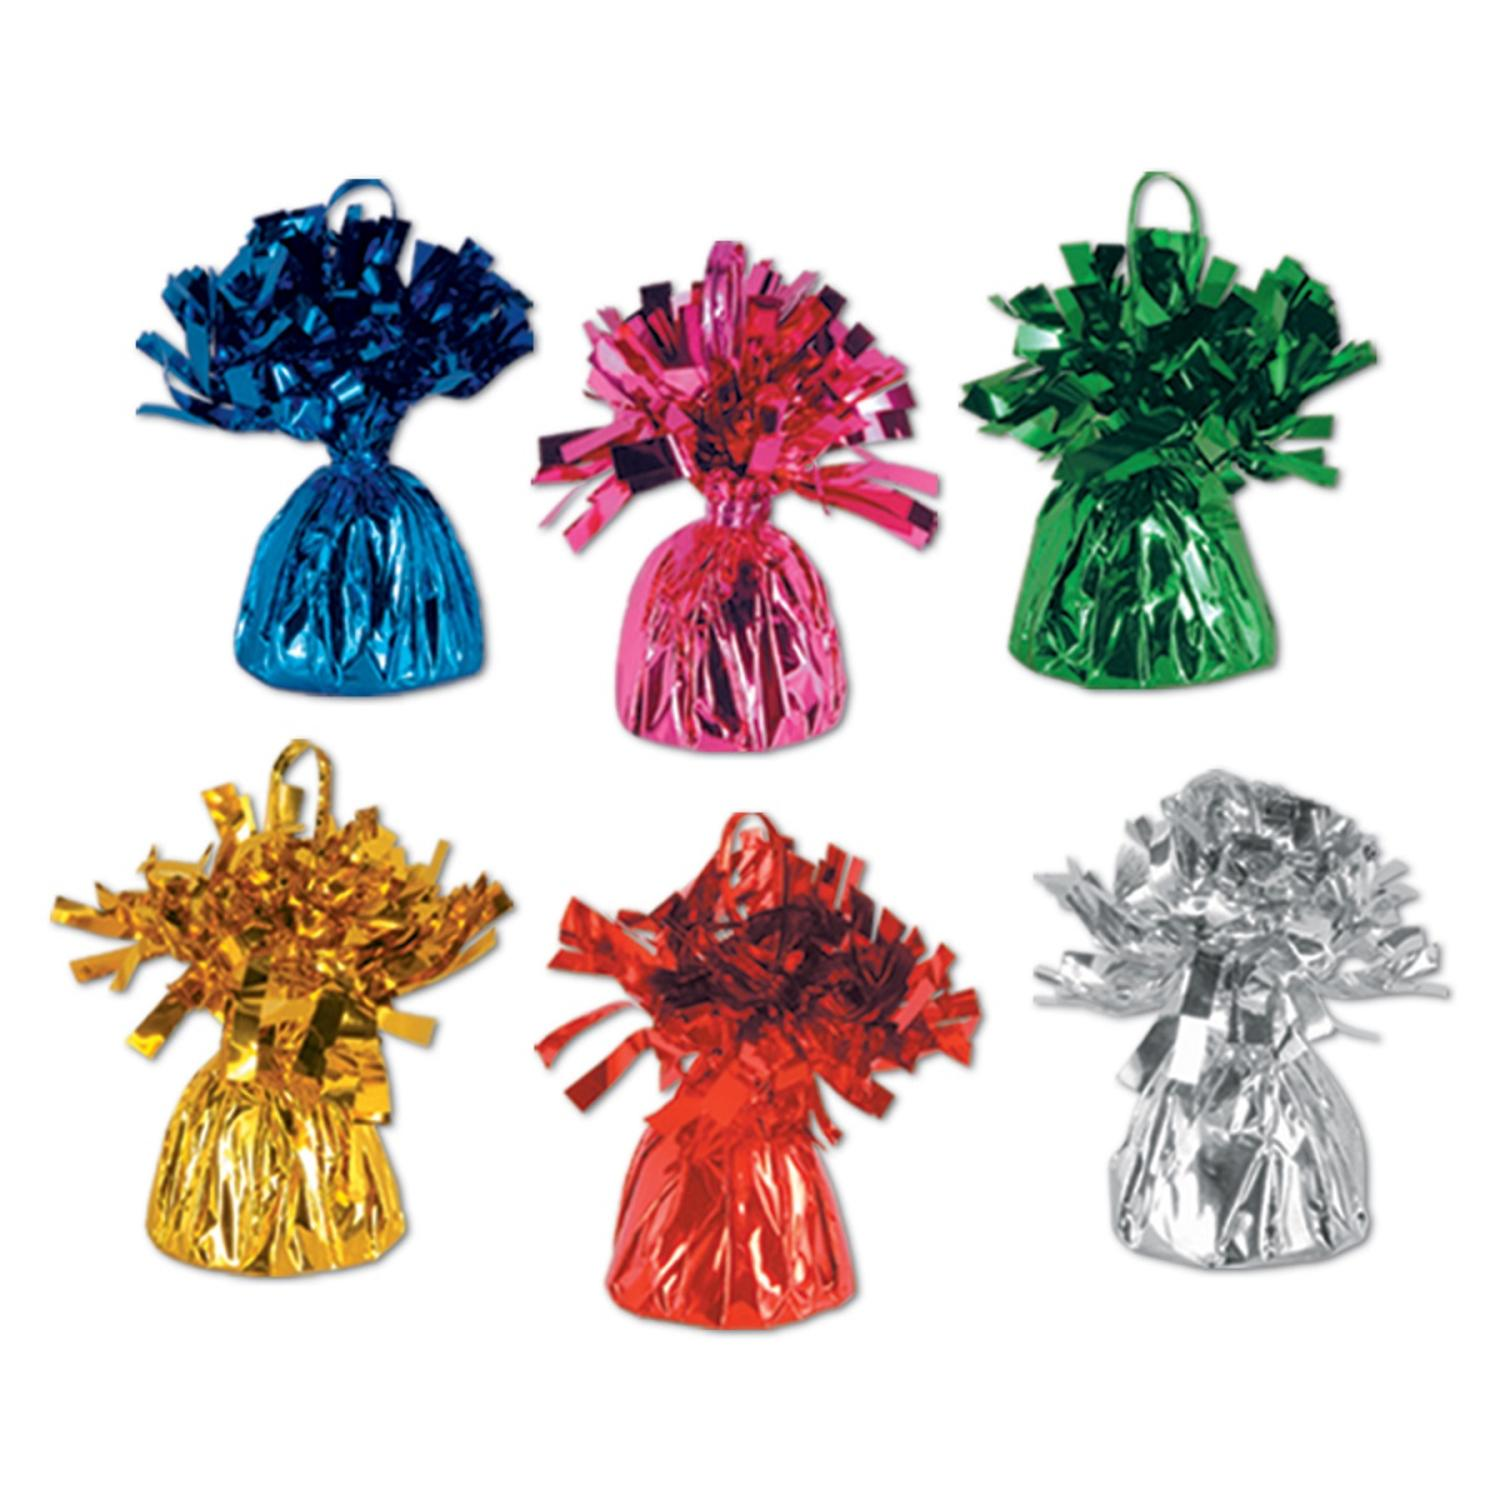 Club Pack of 12 Party Balloon Weight Decorative Birthday Centerpieces 6 oz.